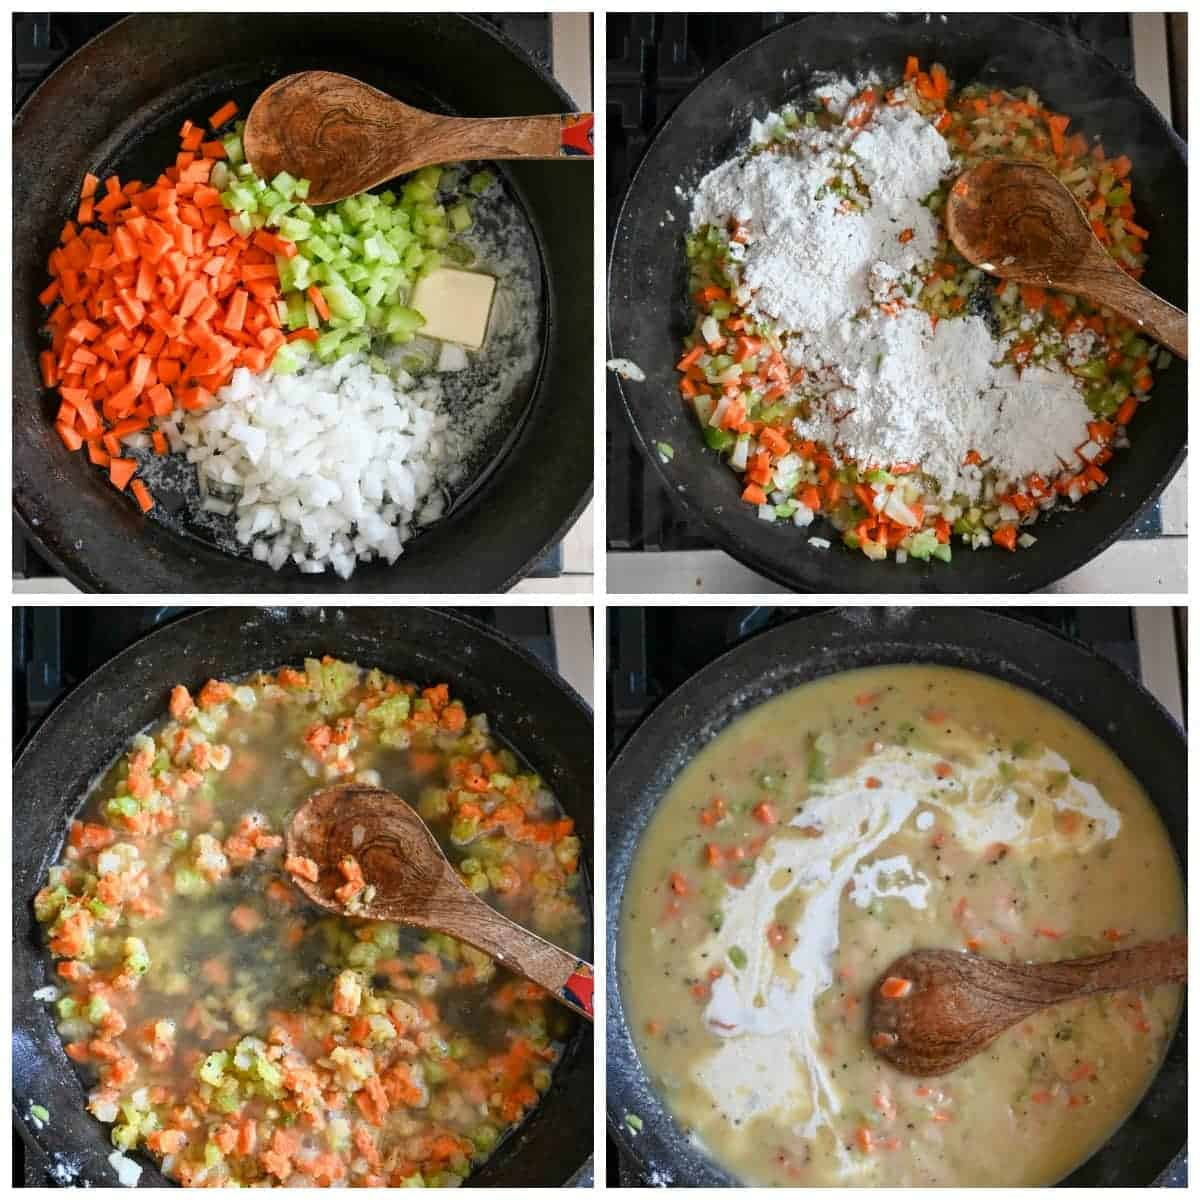 Four precess shots. First one, onion, carrots, celery and butter in a cast iron skillet with a wooden spoon. Second one, couple tablespoon of all purpose flour on top. Third one, chicken stock that was poured in. Fourth one, heavy whipping cream that was poured in.